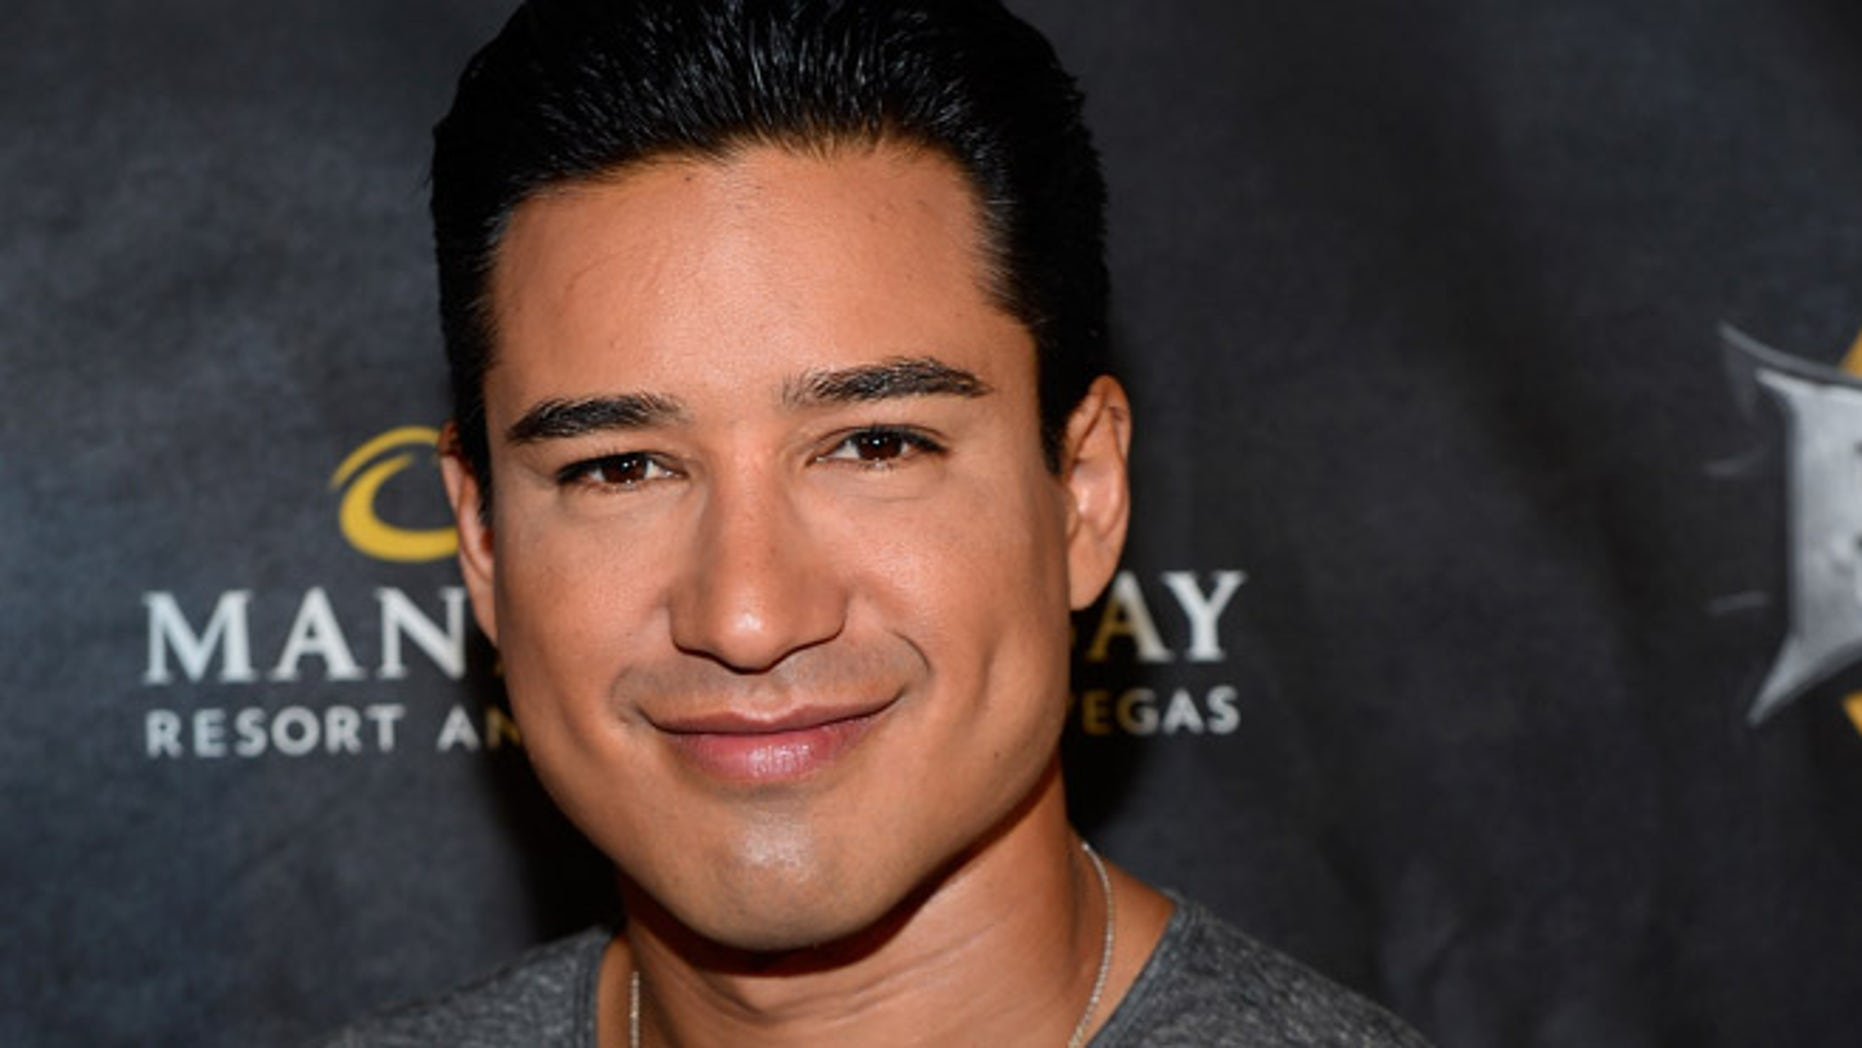 LAS VEGAS, NV - JUNE 27:  Television personality Mario Lopez attends BKB 3, Big Knockout Boxing, at the Mandalay Bay Events Center on June 27, 2015 in Las Vegas, Nevada.  (Photo by Bryan Steffy/Getty Images for DIRECTV)